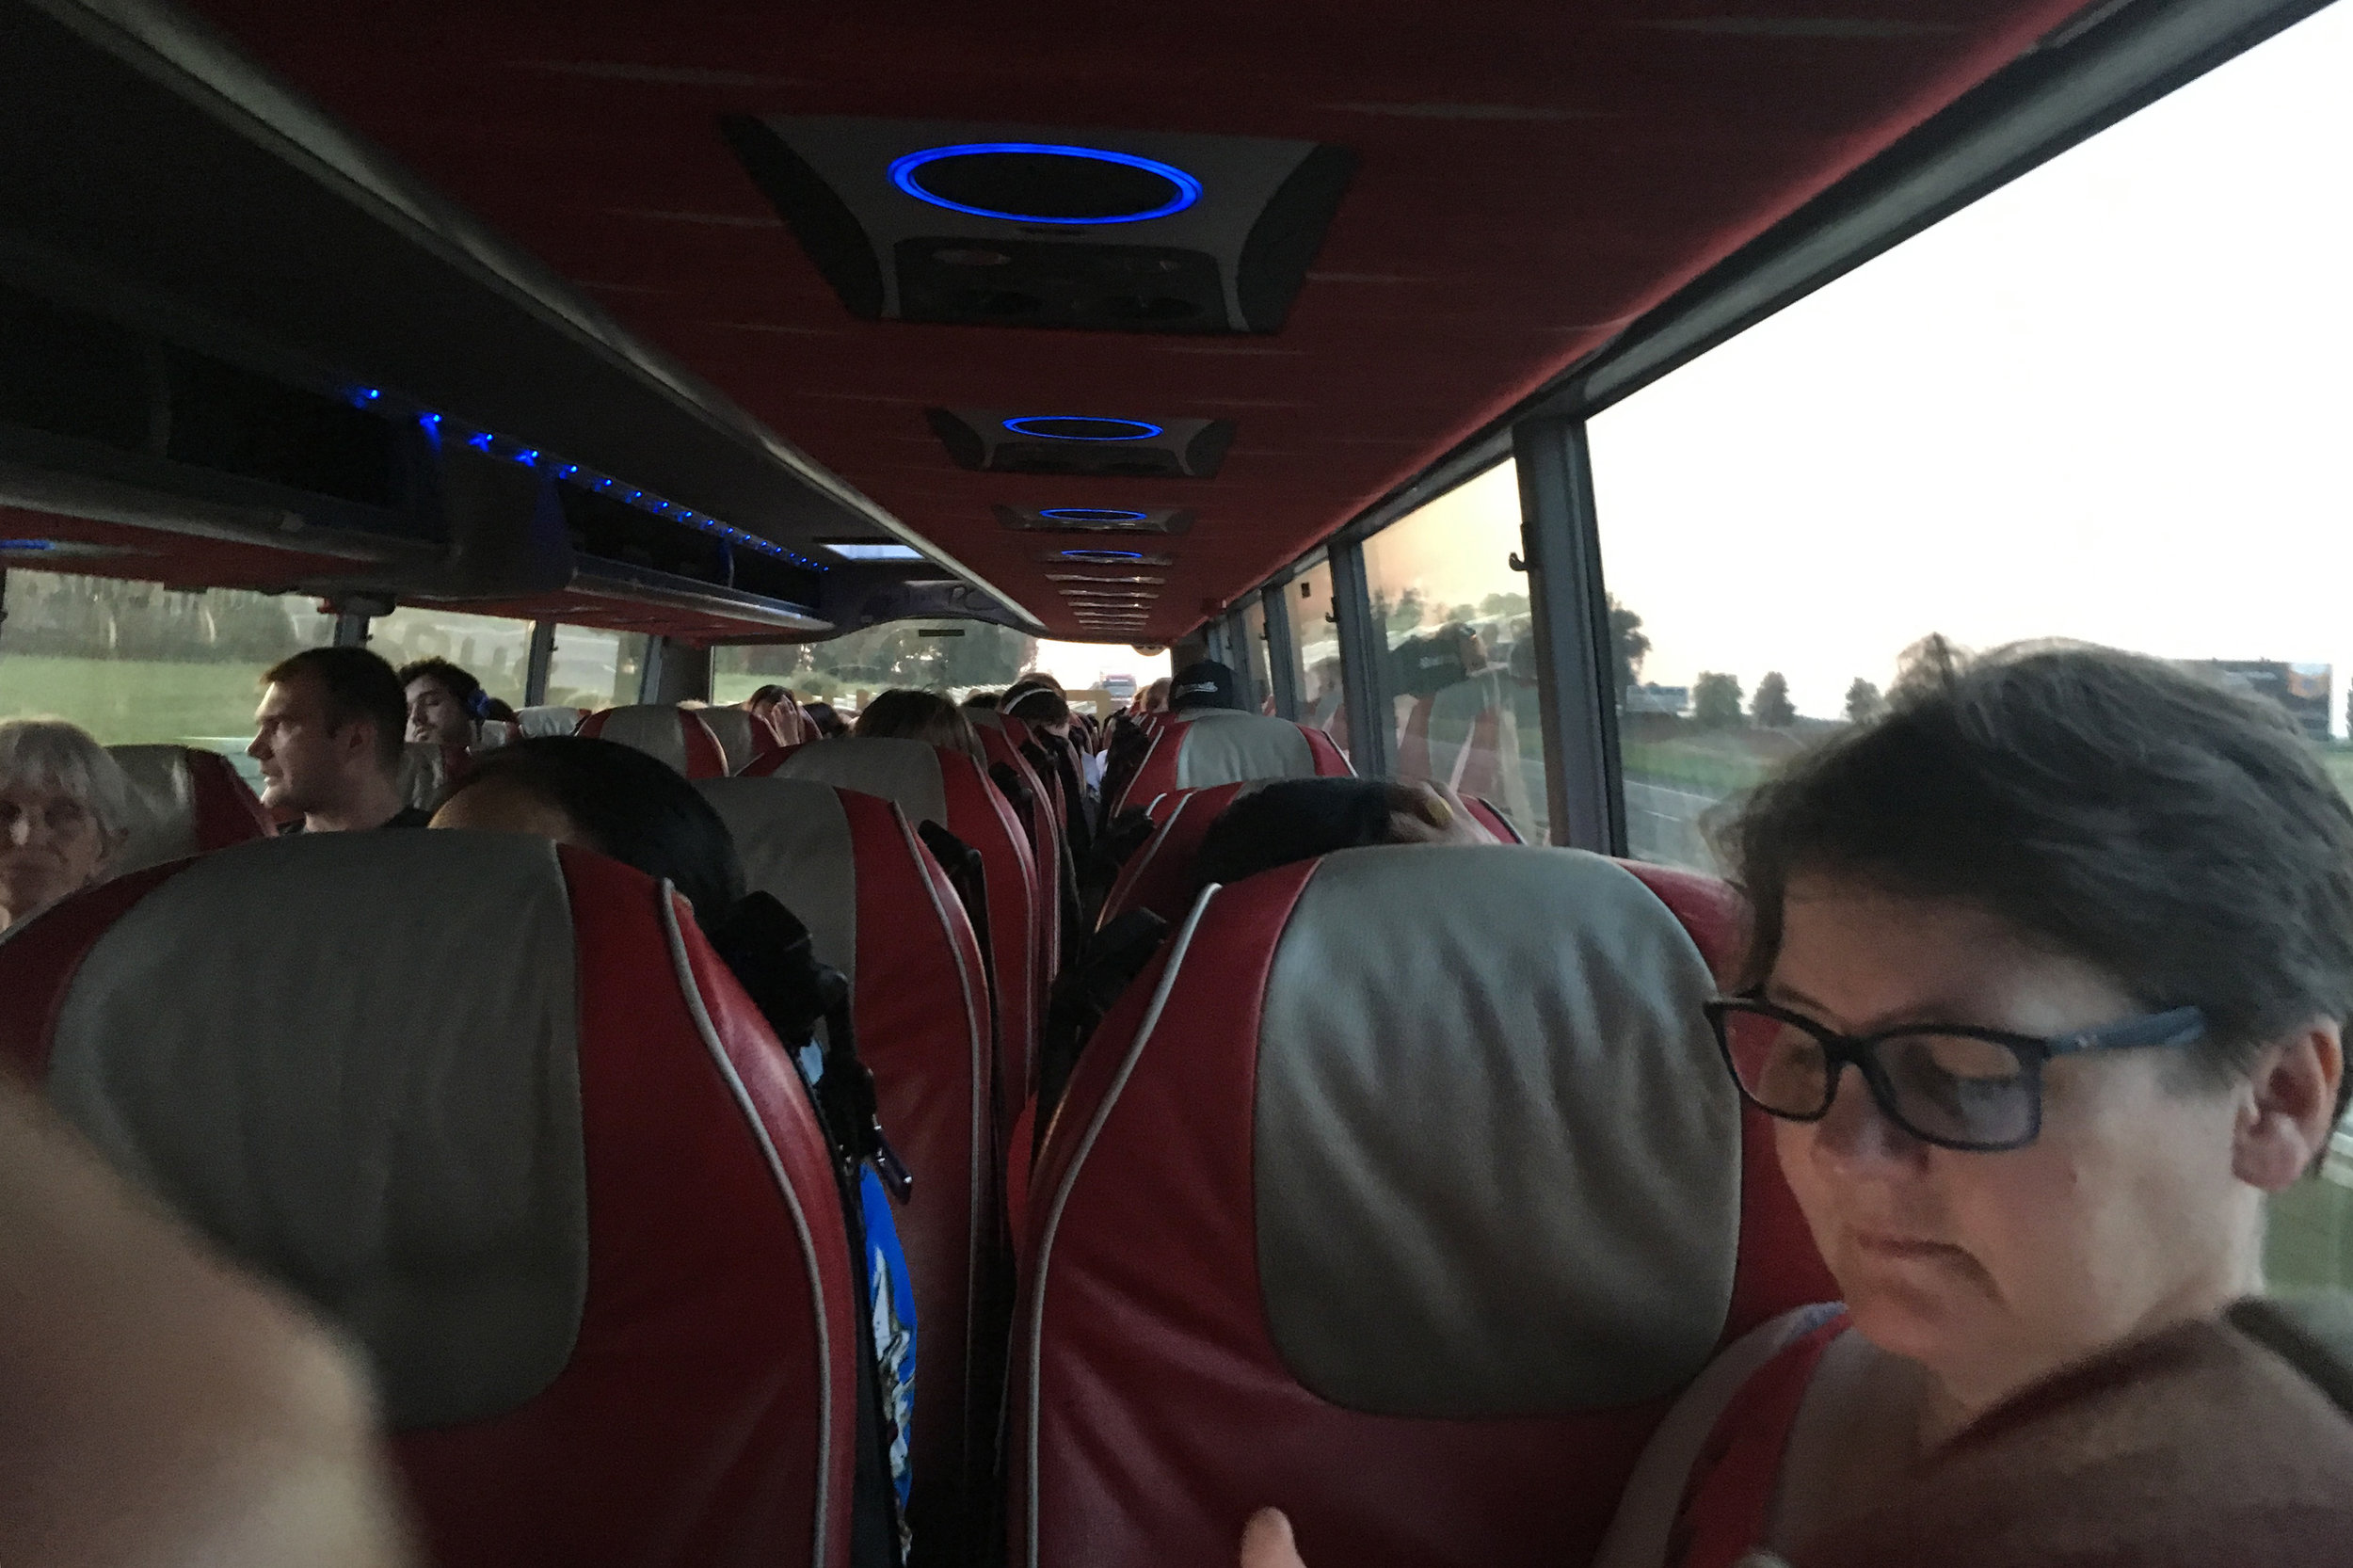 10 hour bus ride from Berlin to Krakow